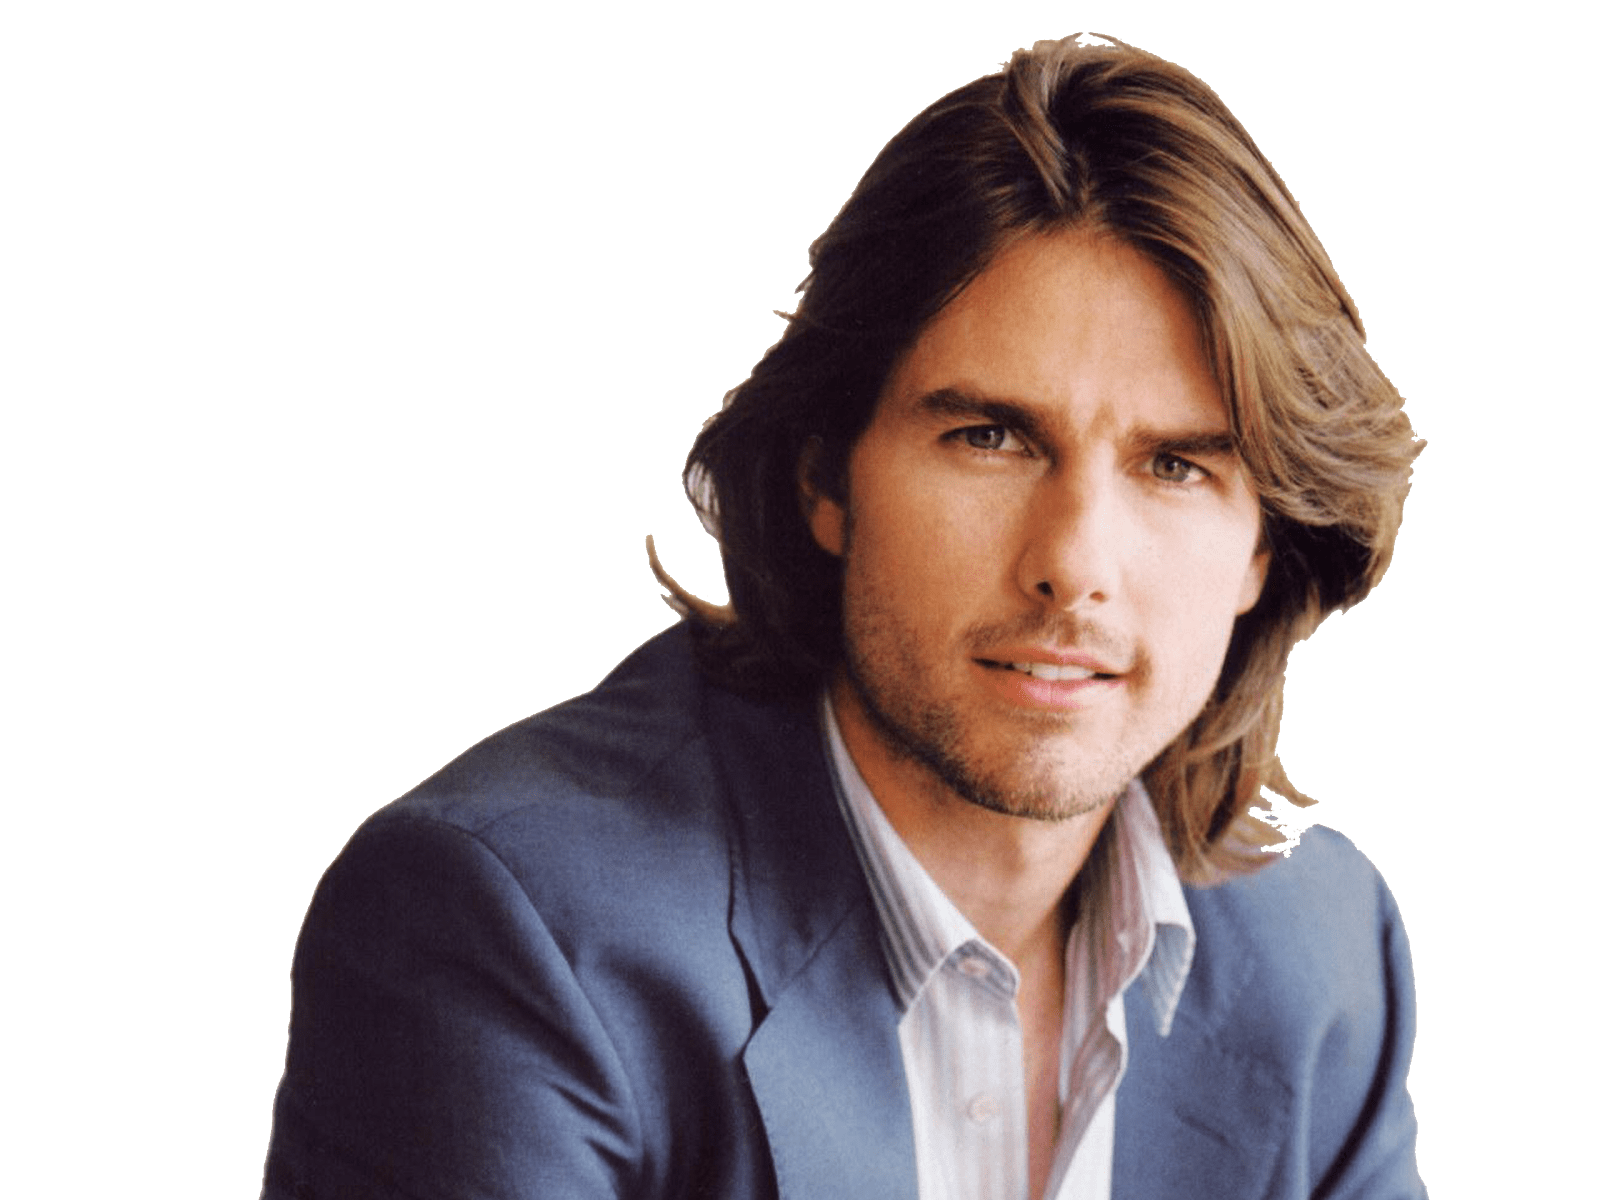 Tom Cruise Png - Tom Cruise Png Hdpng.com 1600, Transparent background PNG HD thumbnail